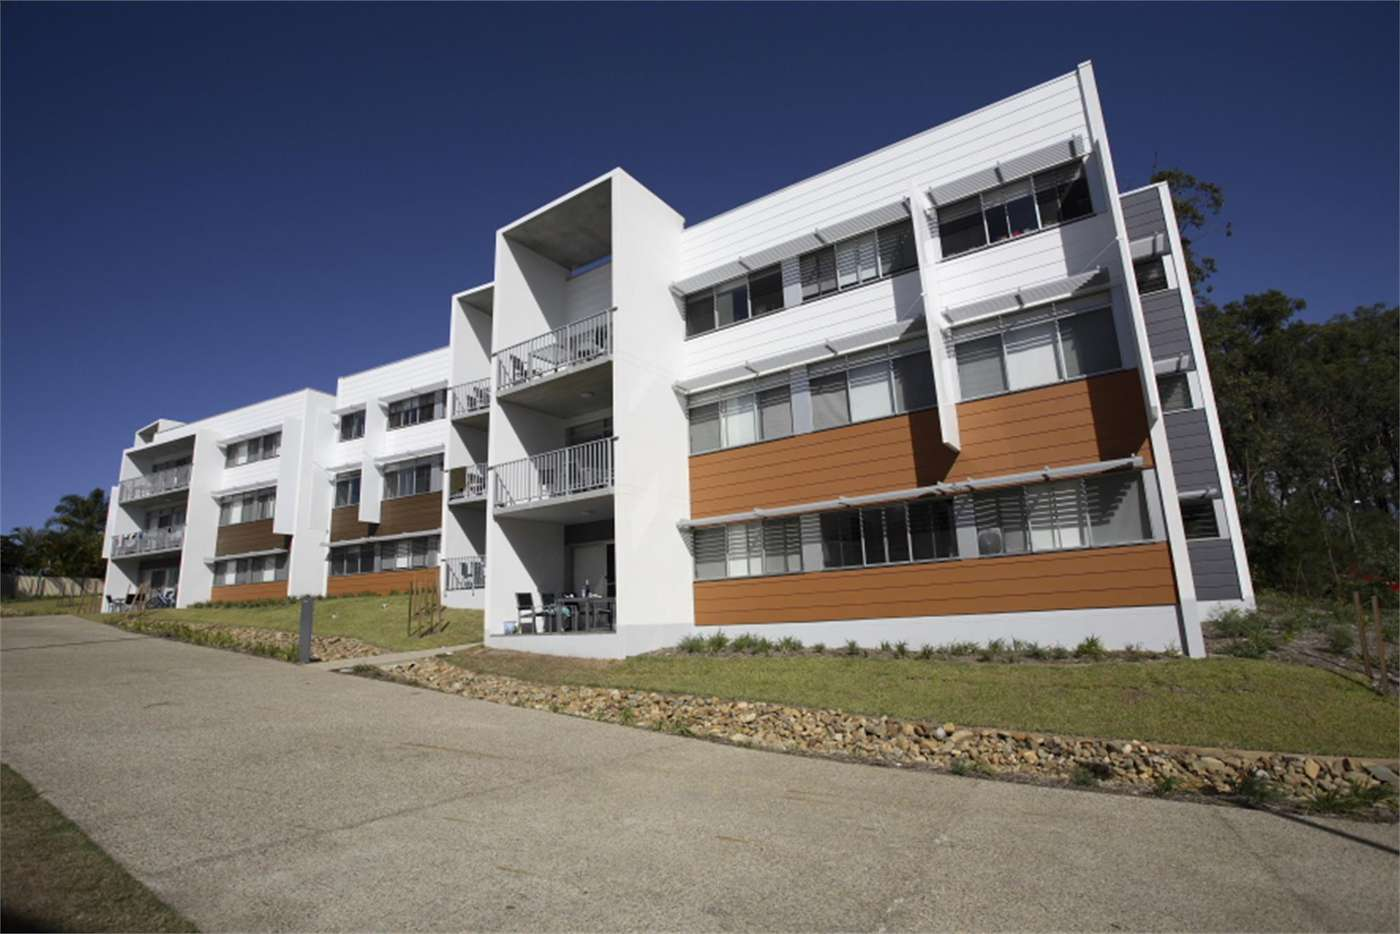 Main view of Homely apartment listing, 0/1 Griffith University Village Village Road, Southport QLD 4222